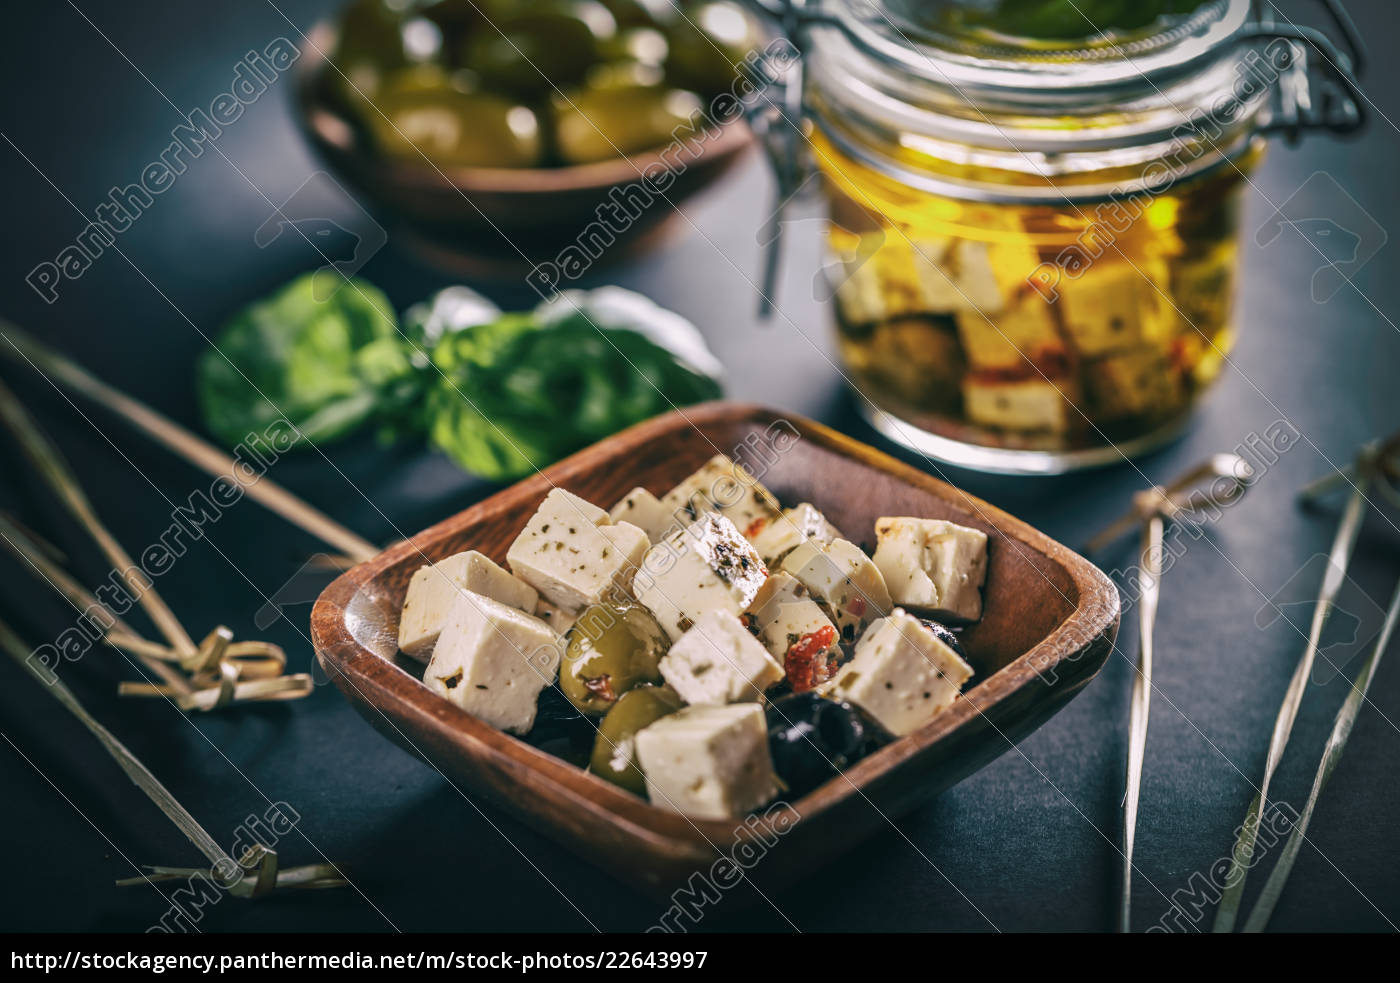 little, cubes, of, cheese - 22643997